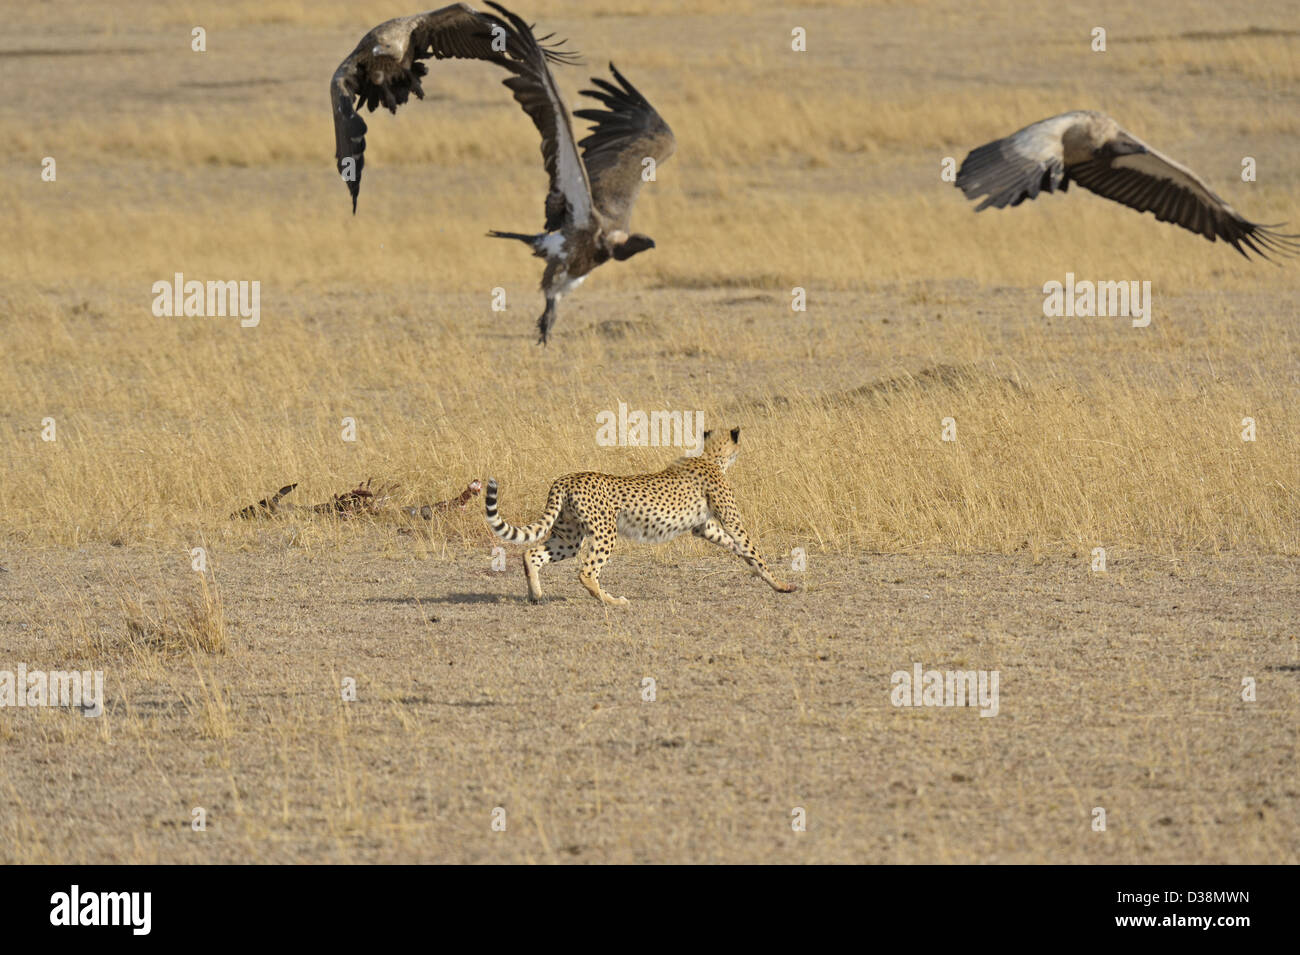 Cheetah chasing off vultures from a wildebeest kill in the grasslands of Masai Mara in Kenya, Africa - Stock Image